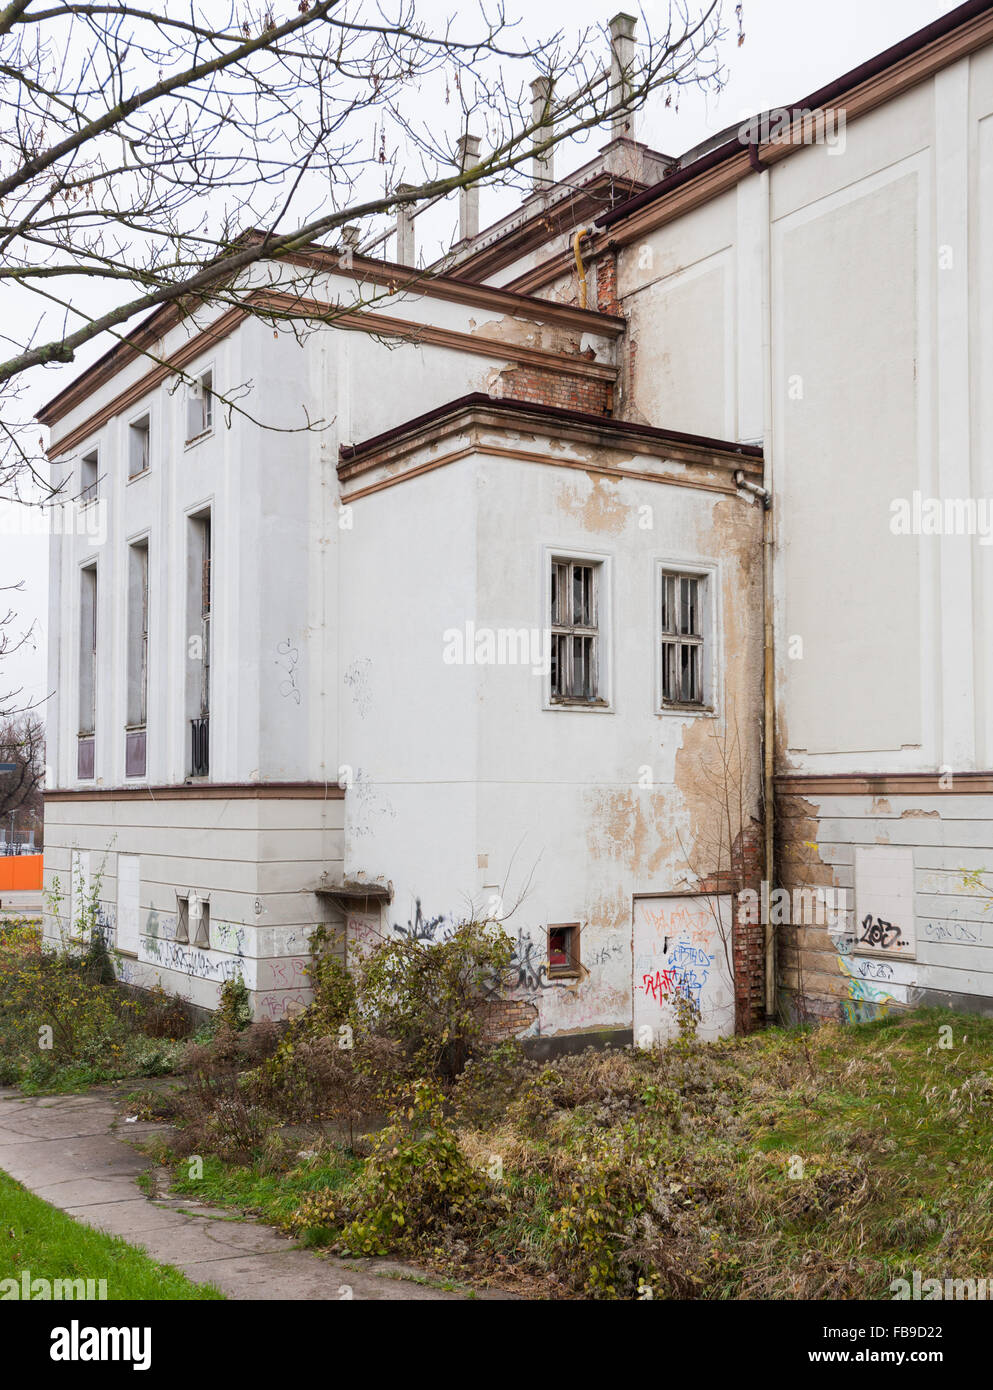 Ruins of the abandoned Lichtspieltheater der Jugend cinema, Frankfurt (Oder), Germany Stock Photo